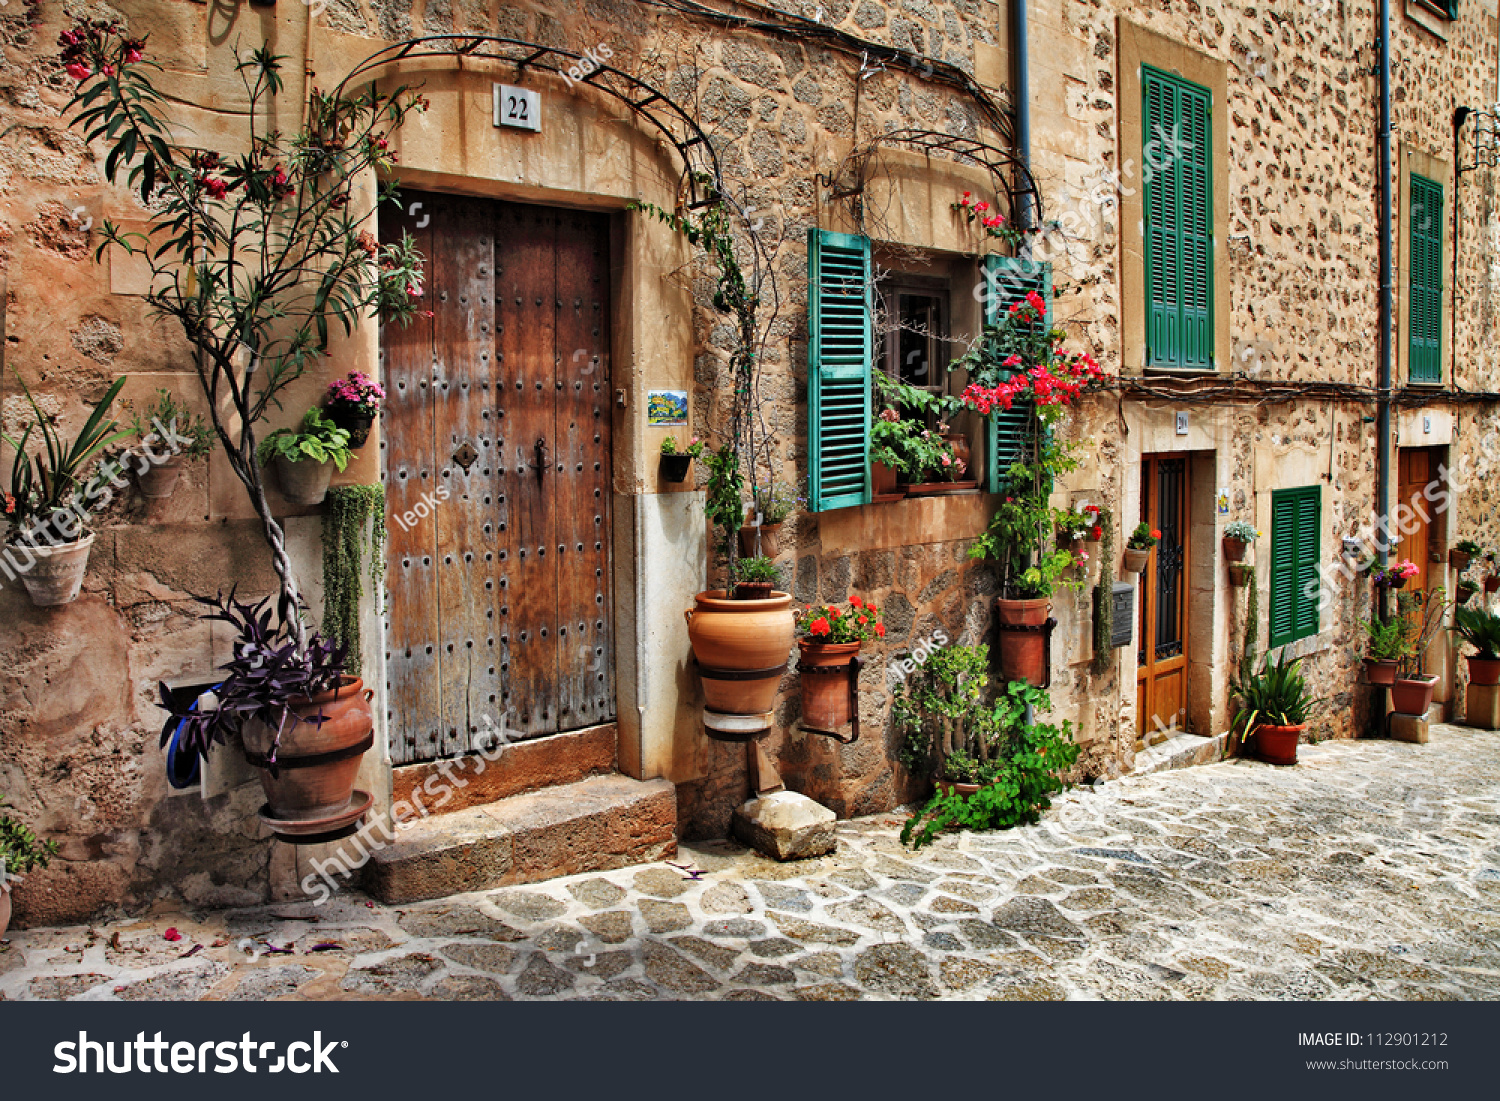 Charming Streets Of Old Mediterranean Towns Stock Photo 112901212 : Shutterstock